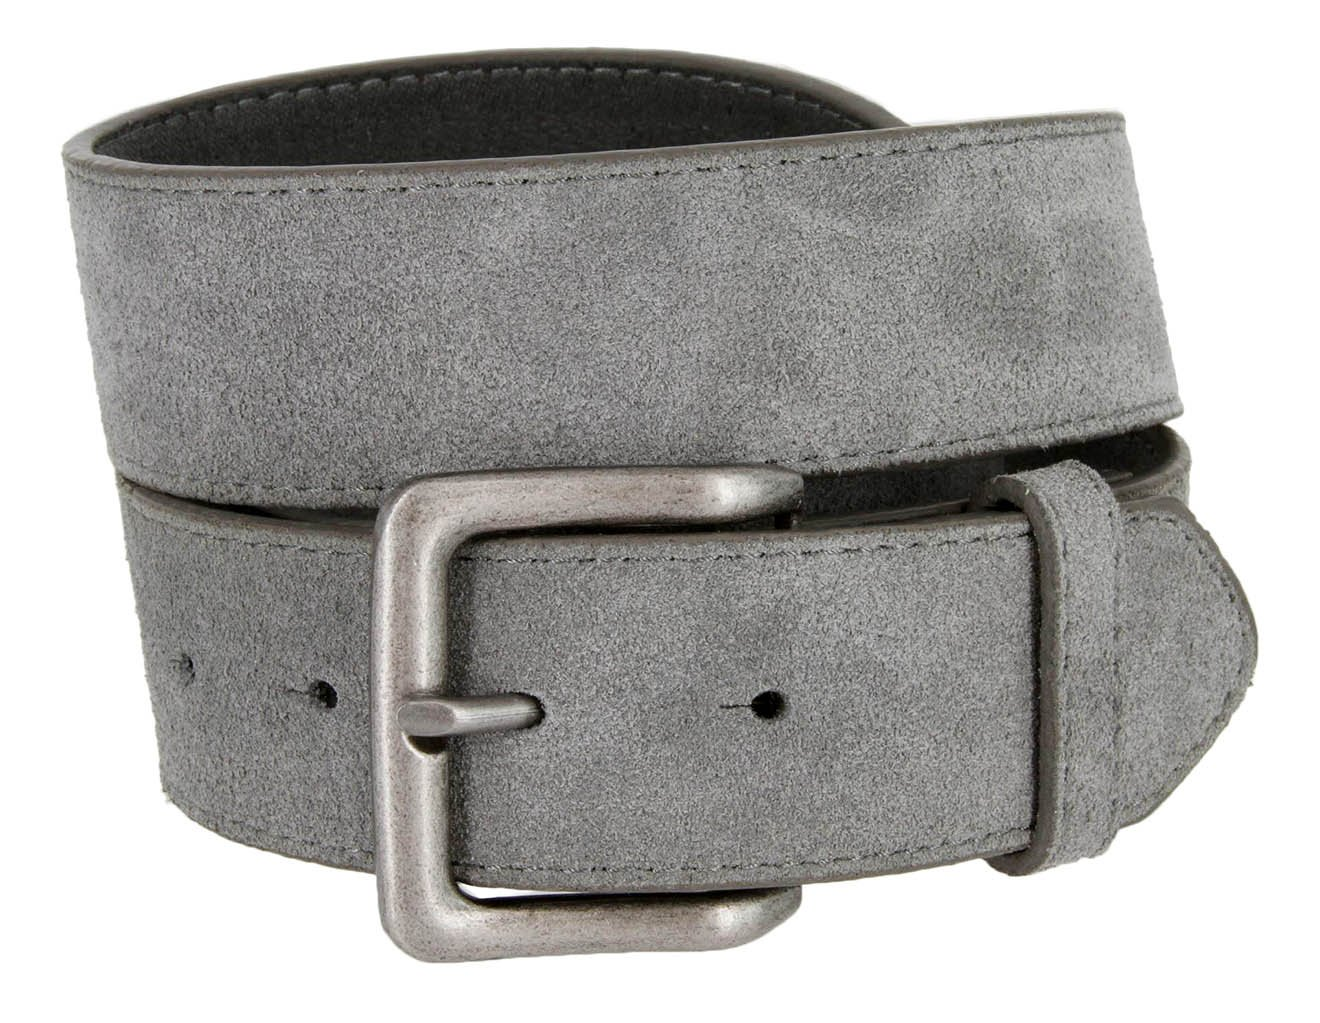 Square Buckle Casual Jean Suede Leather Belt for Men (Gray, 34)